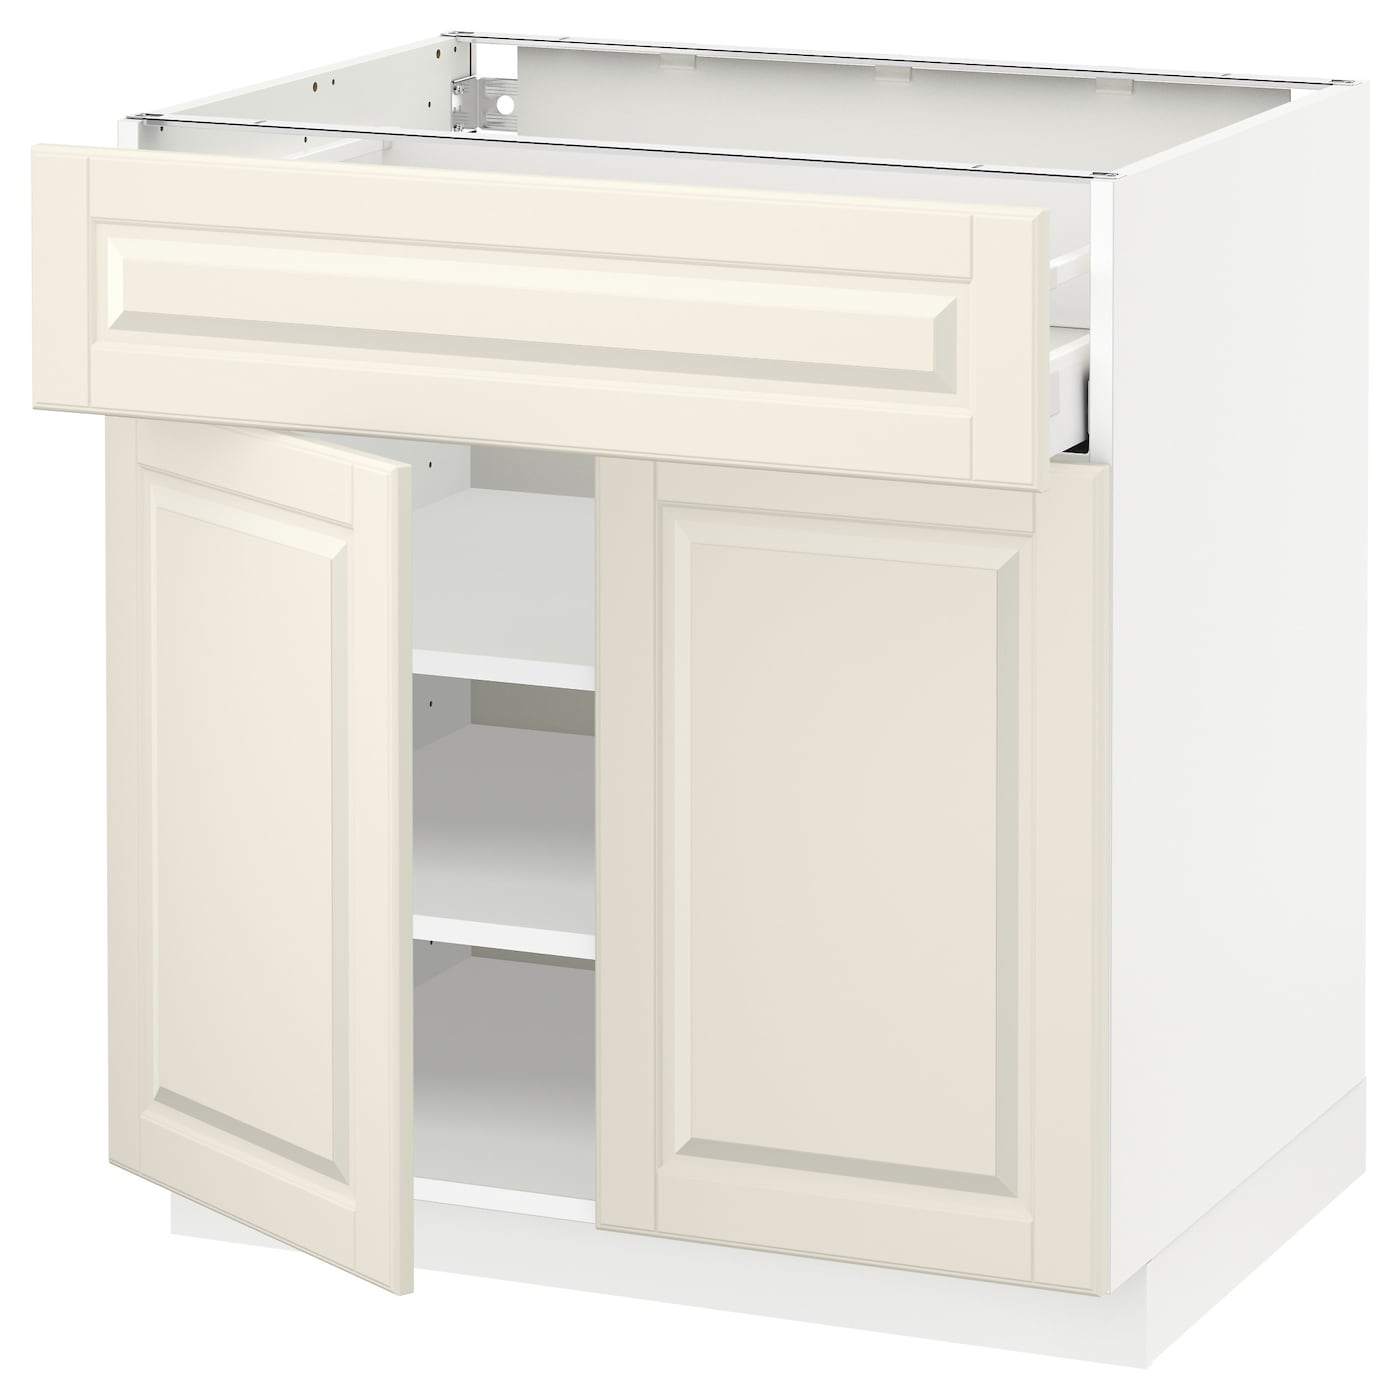 base kitchen cabinet kitchen base units amp kitchen sink units ikea 10949